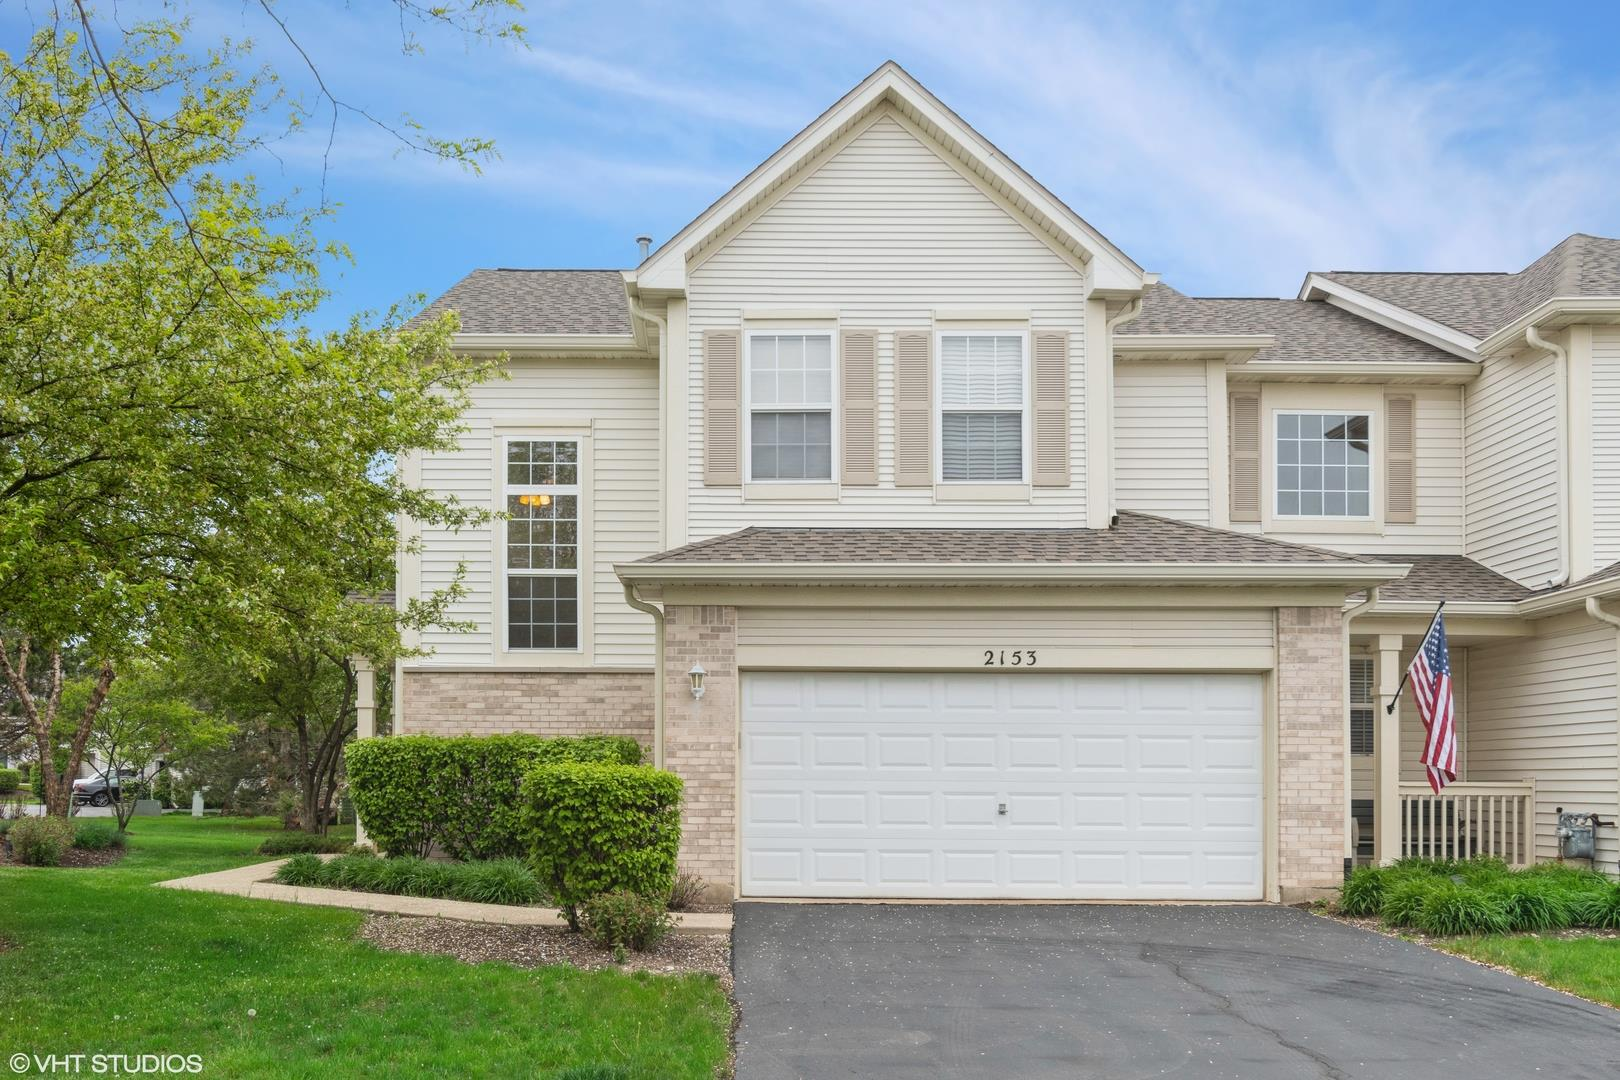 2153 Sunrise Circle #2153, Aurora, IL 60503 - #: 11076535